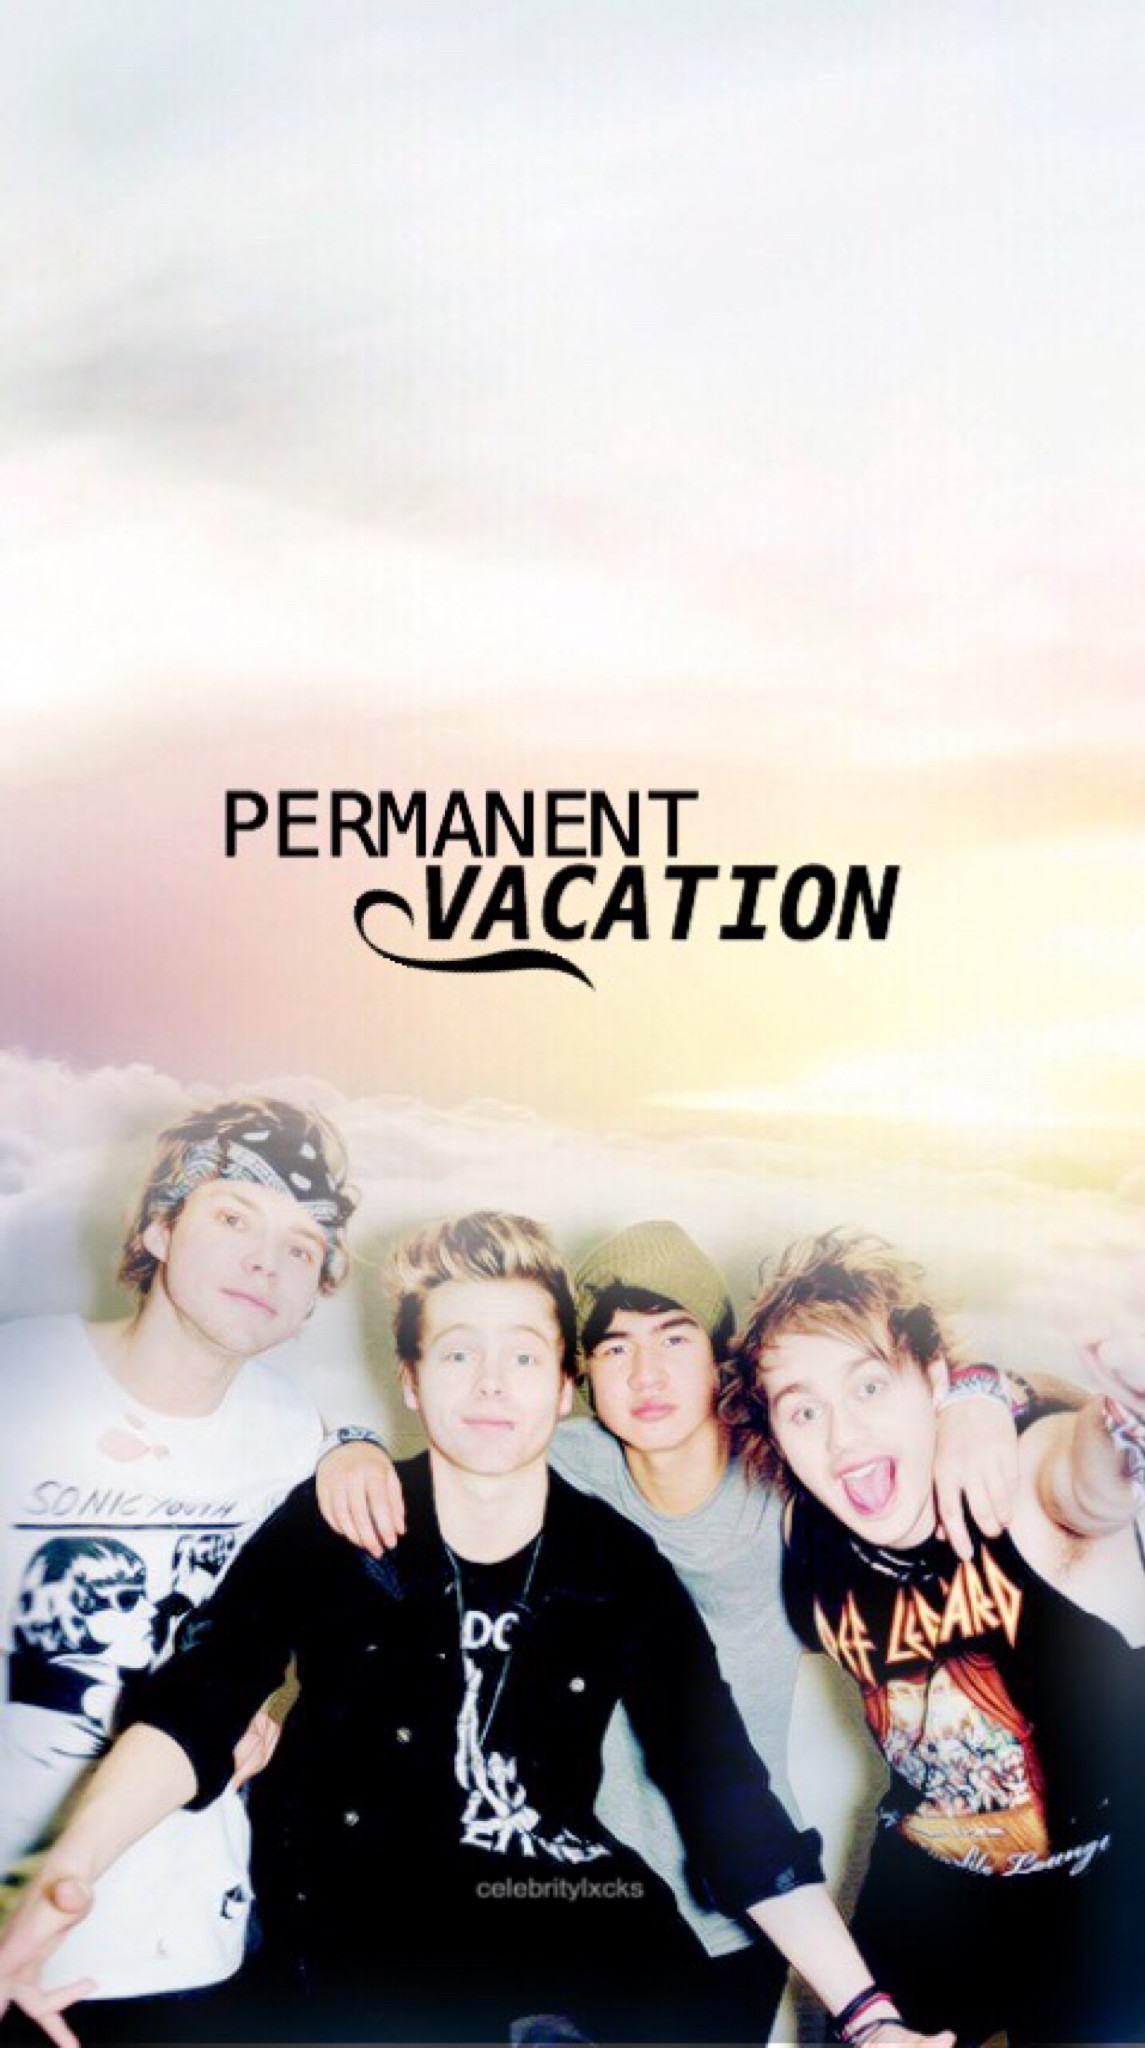 FREE •5 Seconds Of Summer 'Permanent Vacation' Lockscreen• please LIKE if  you